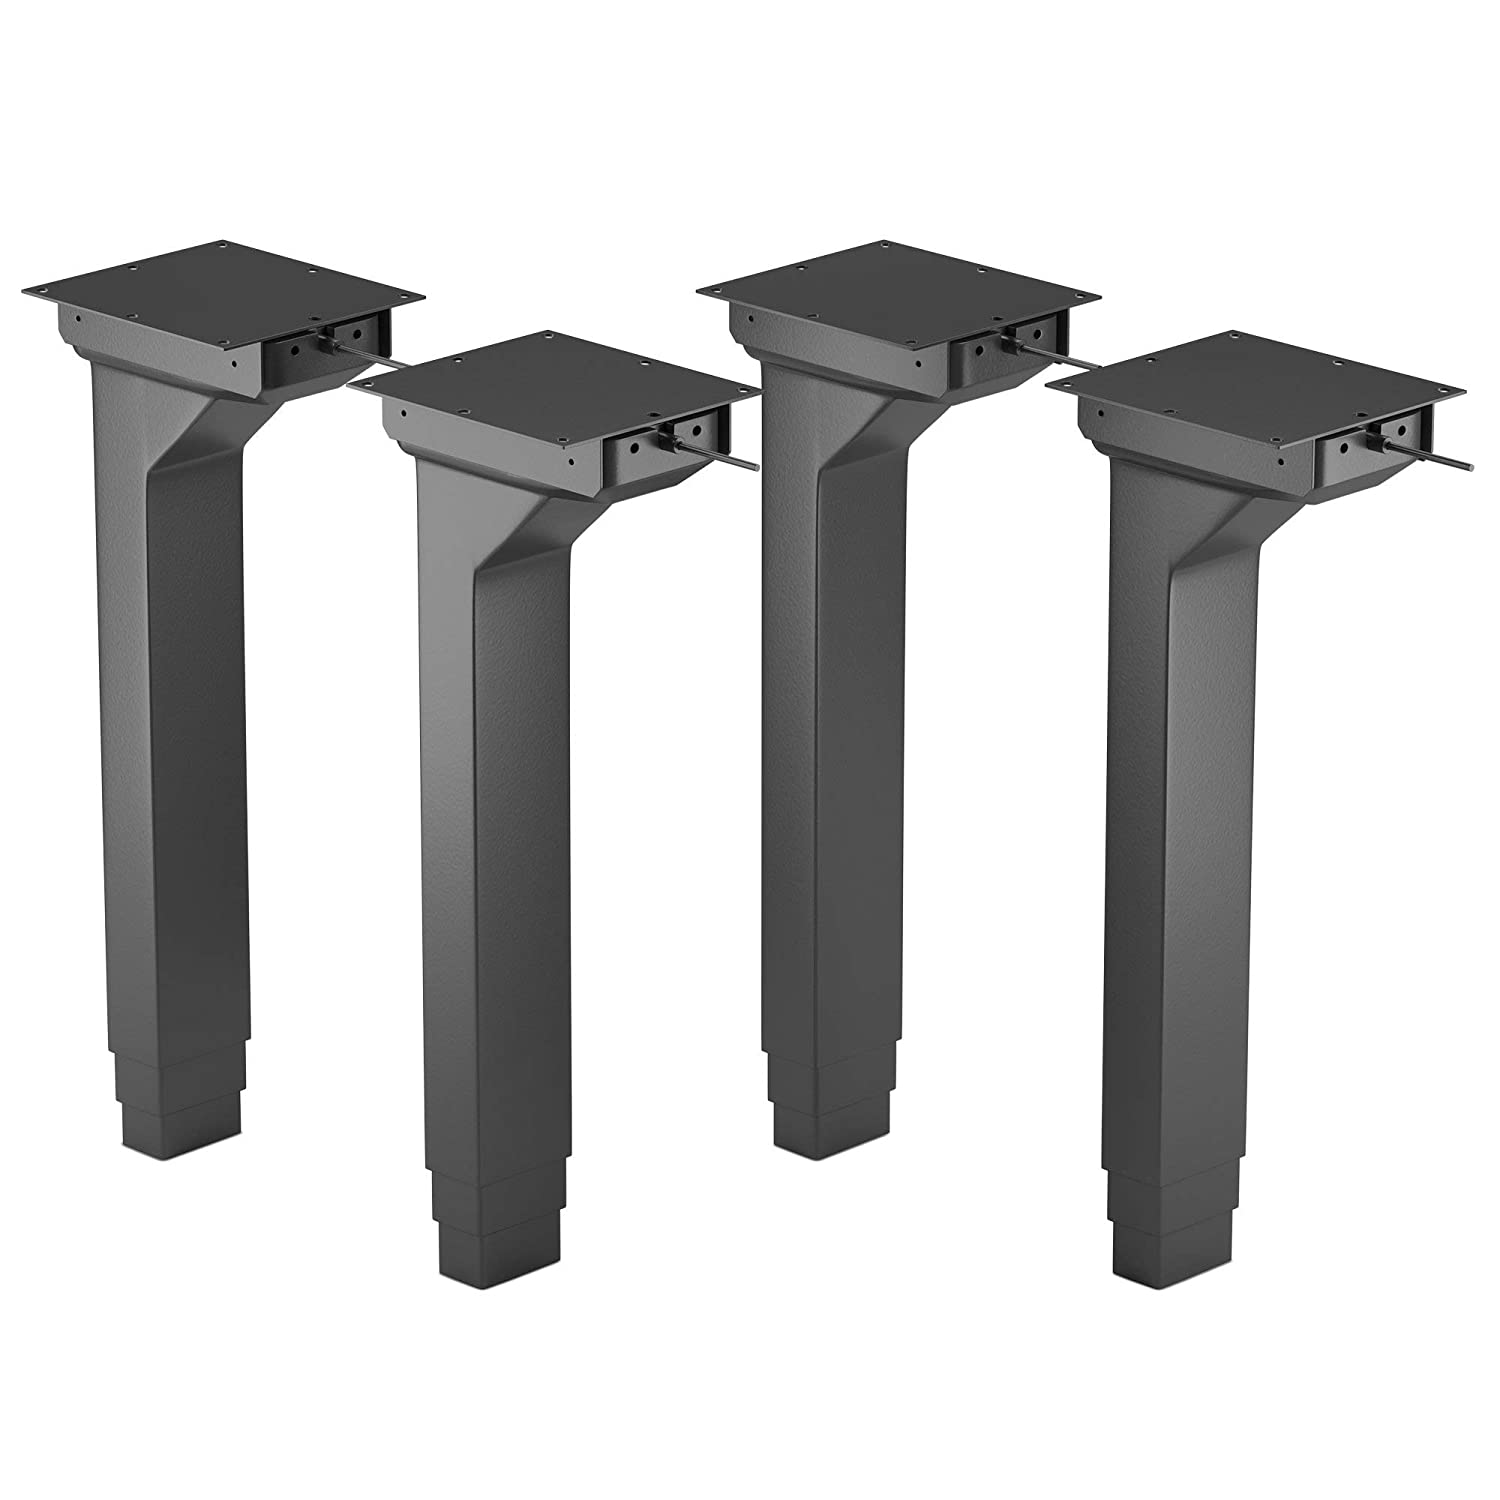 Height Adjustable Four Leg Lifting Column Set - 24VDC | Brushed DC Motor | Height Range (23.5 to 49) | for Industrial, Home, Office Automation | FLT-04 Model